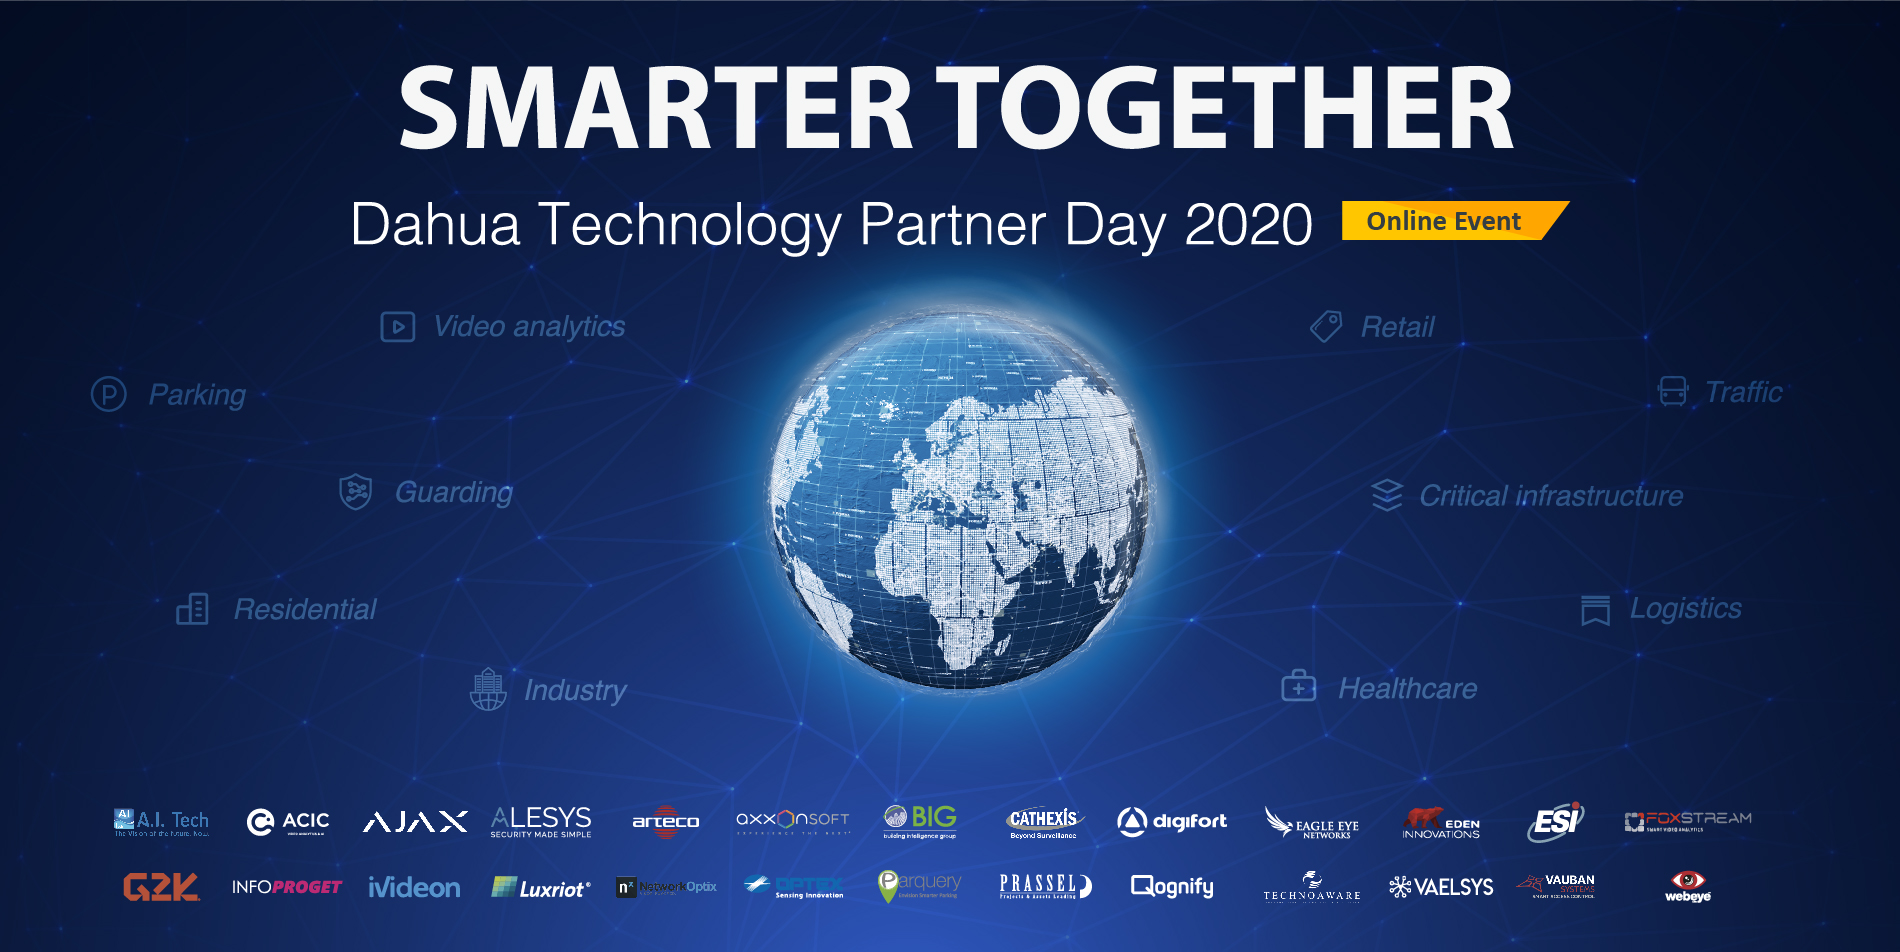 Dahua Technology to Host Online Partner Day 2020 with 26 Technology Partners